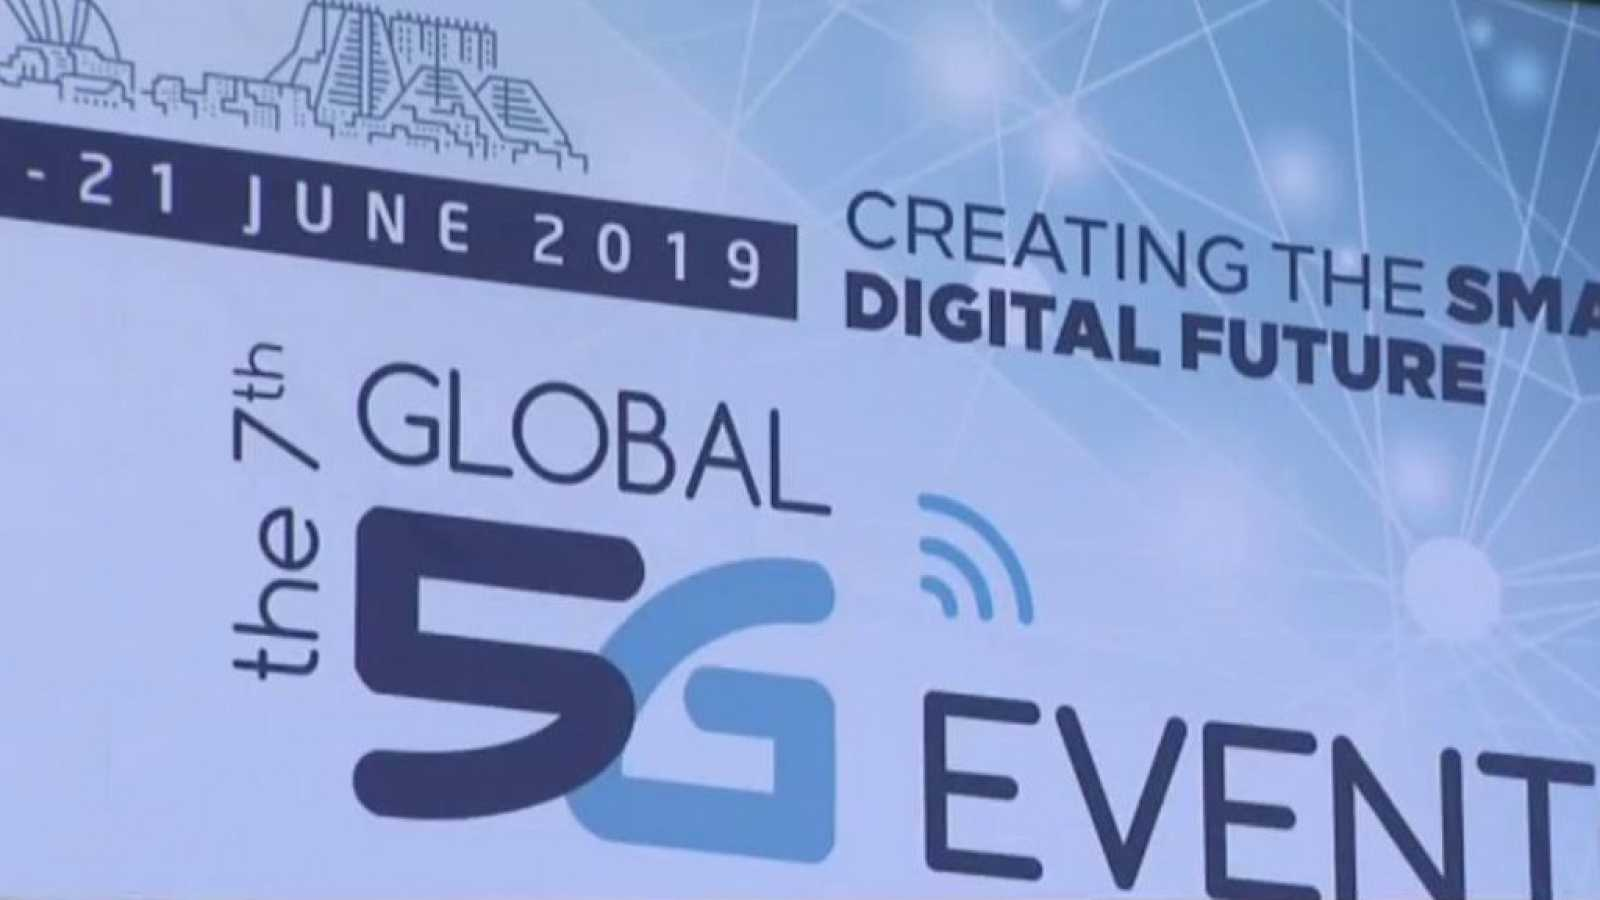 Zoom Net - 5G Global Event, La Frontera y Formula 1 2019 - ver ahora